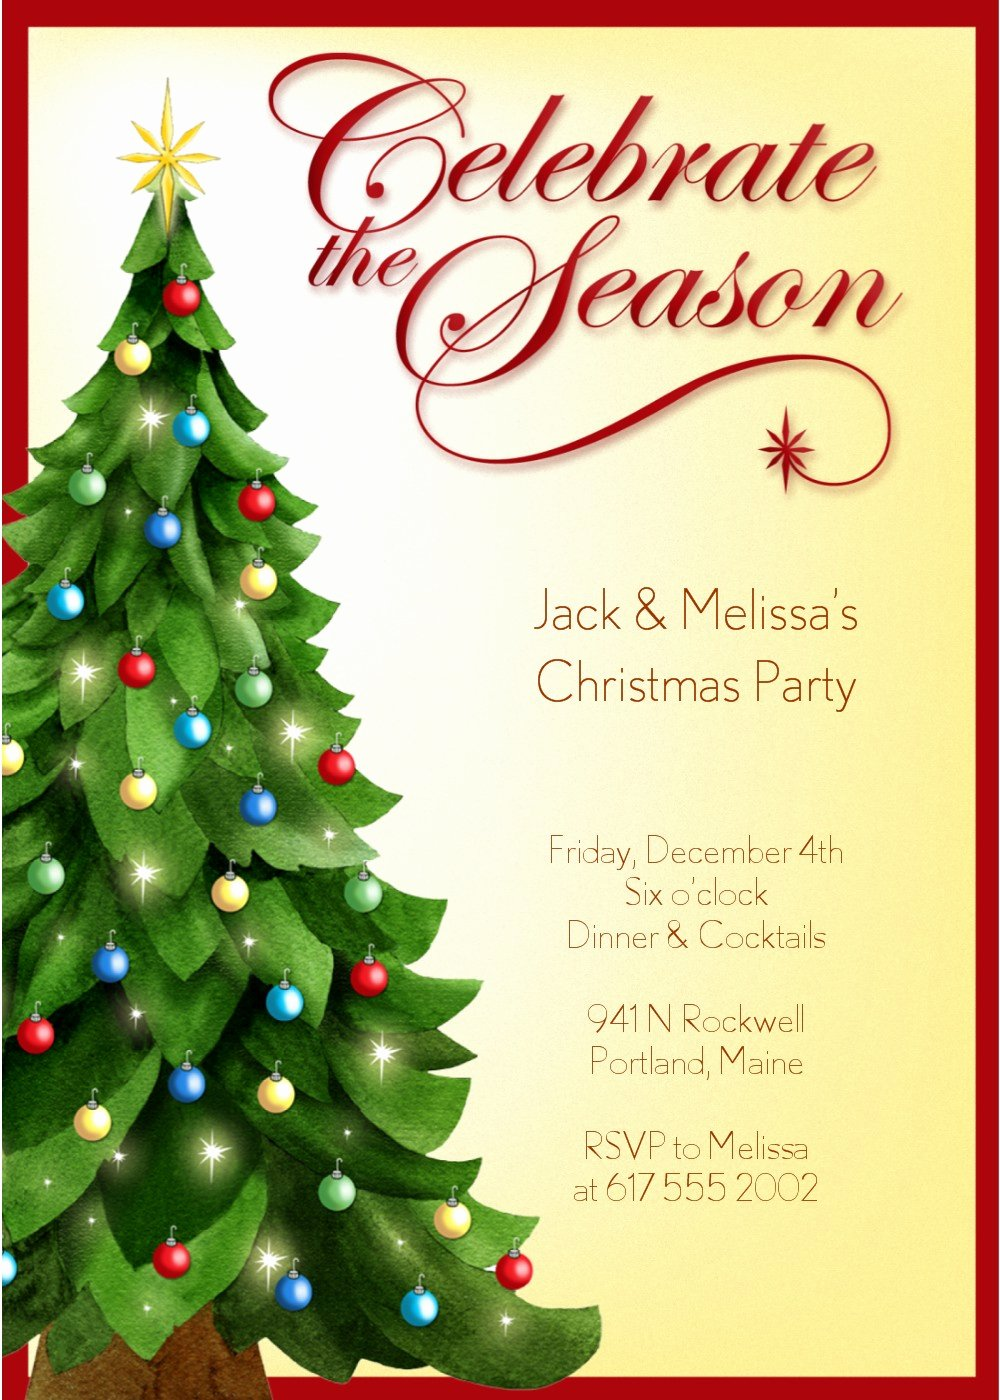 Word Template for Invitations Best Of Christmas Party Invitation Templates Free Word